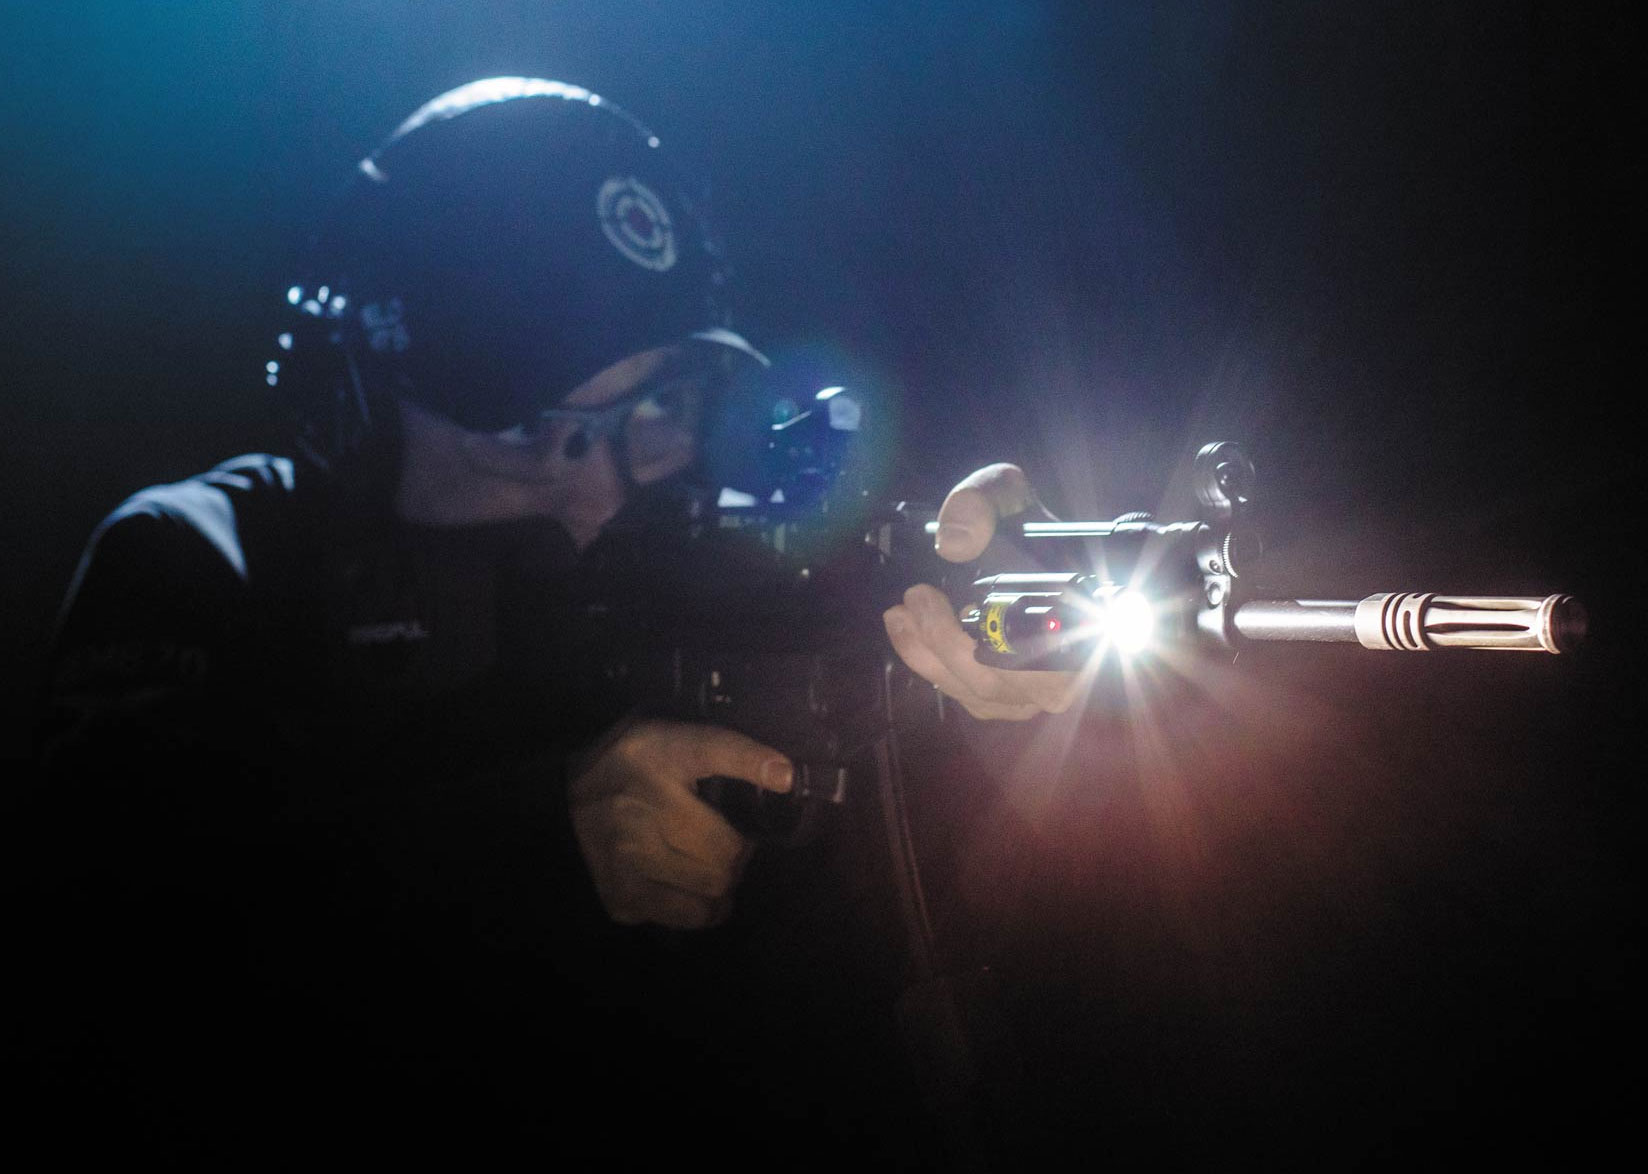 Author, Vitaly Pedchenko, Testing Olight Baldr with Red Laser Sight